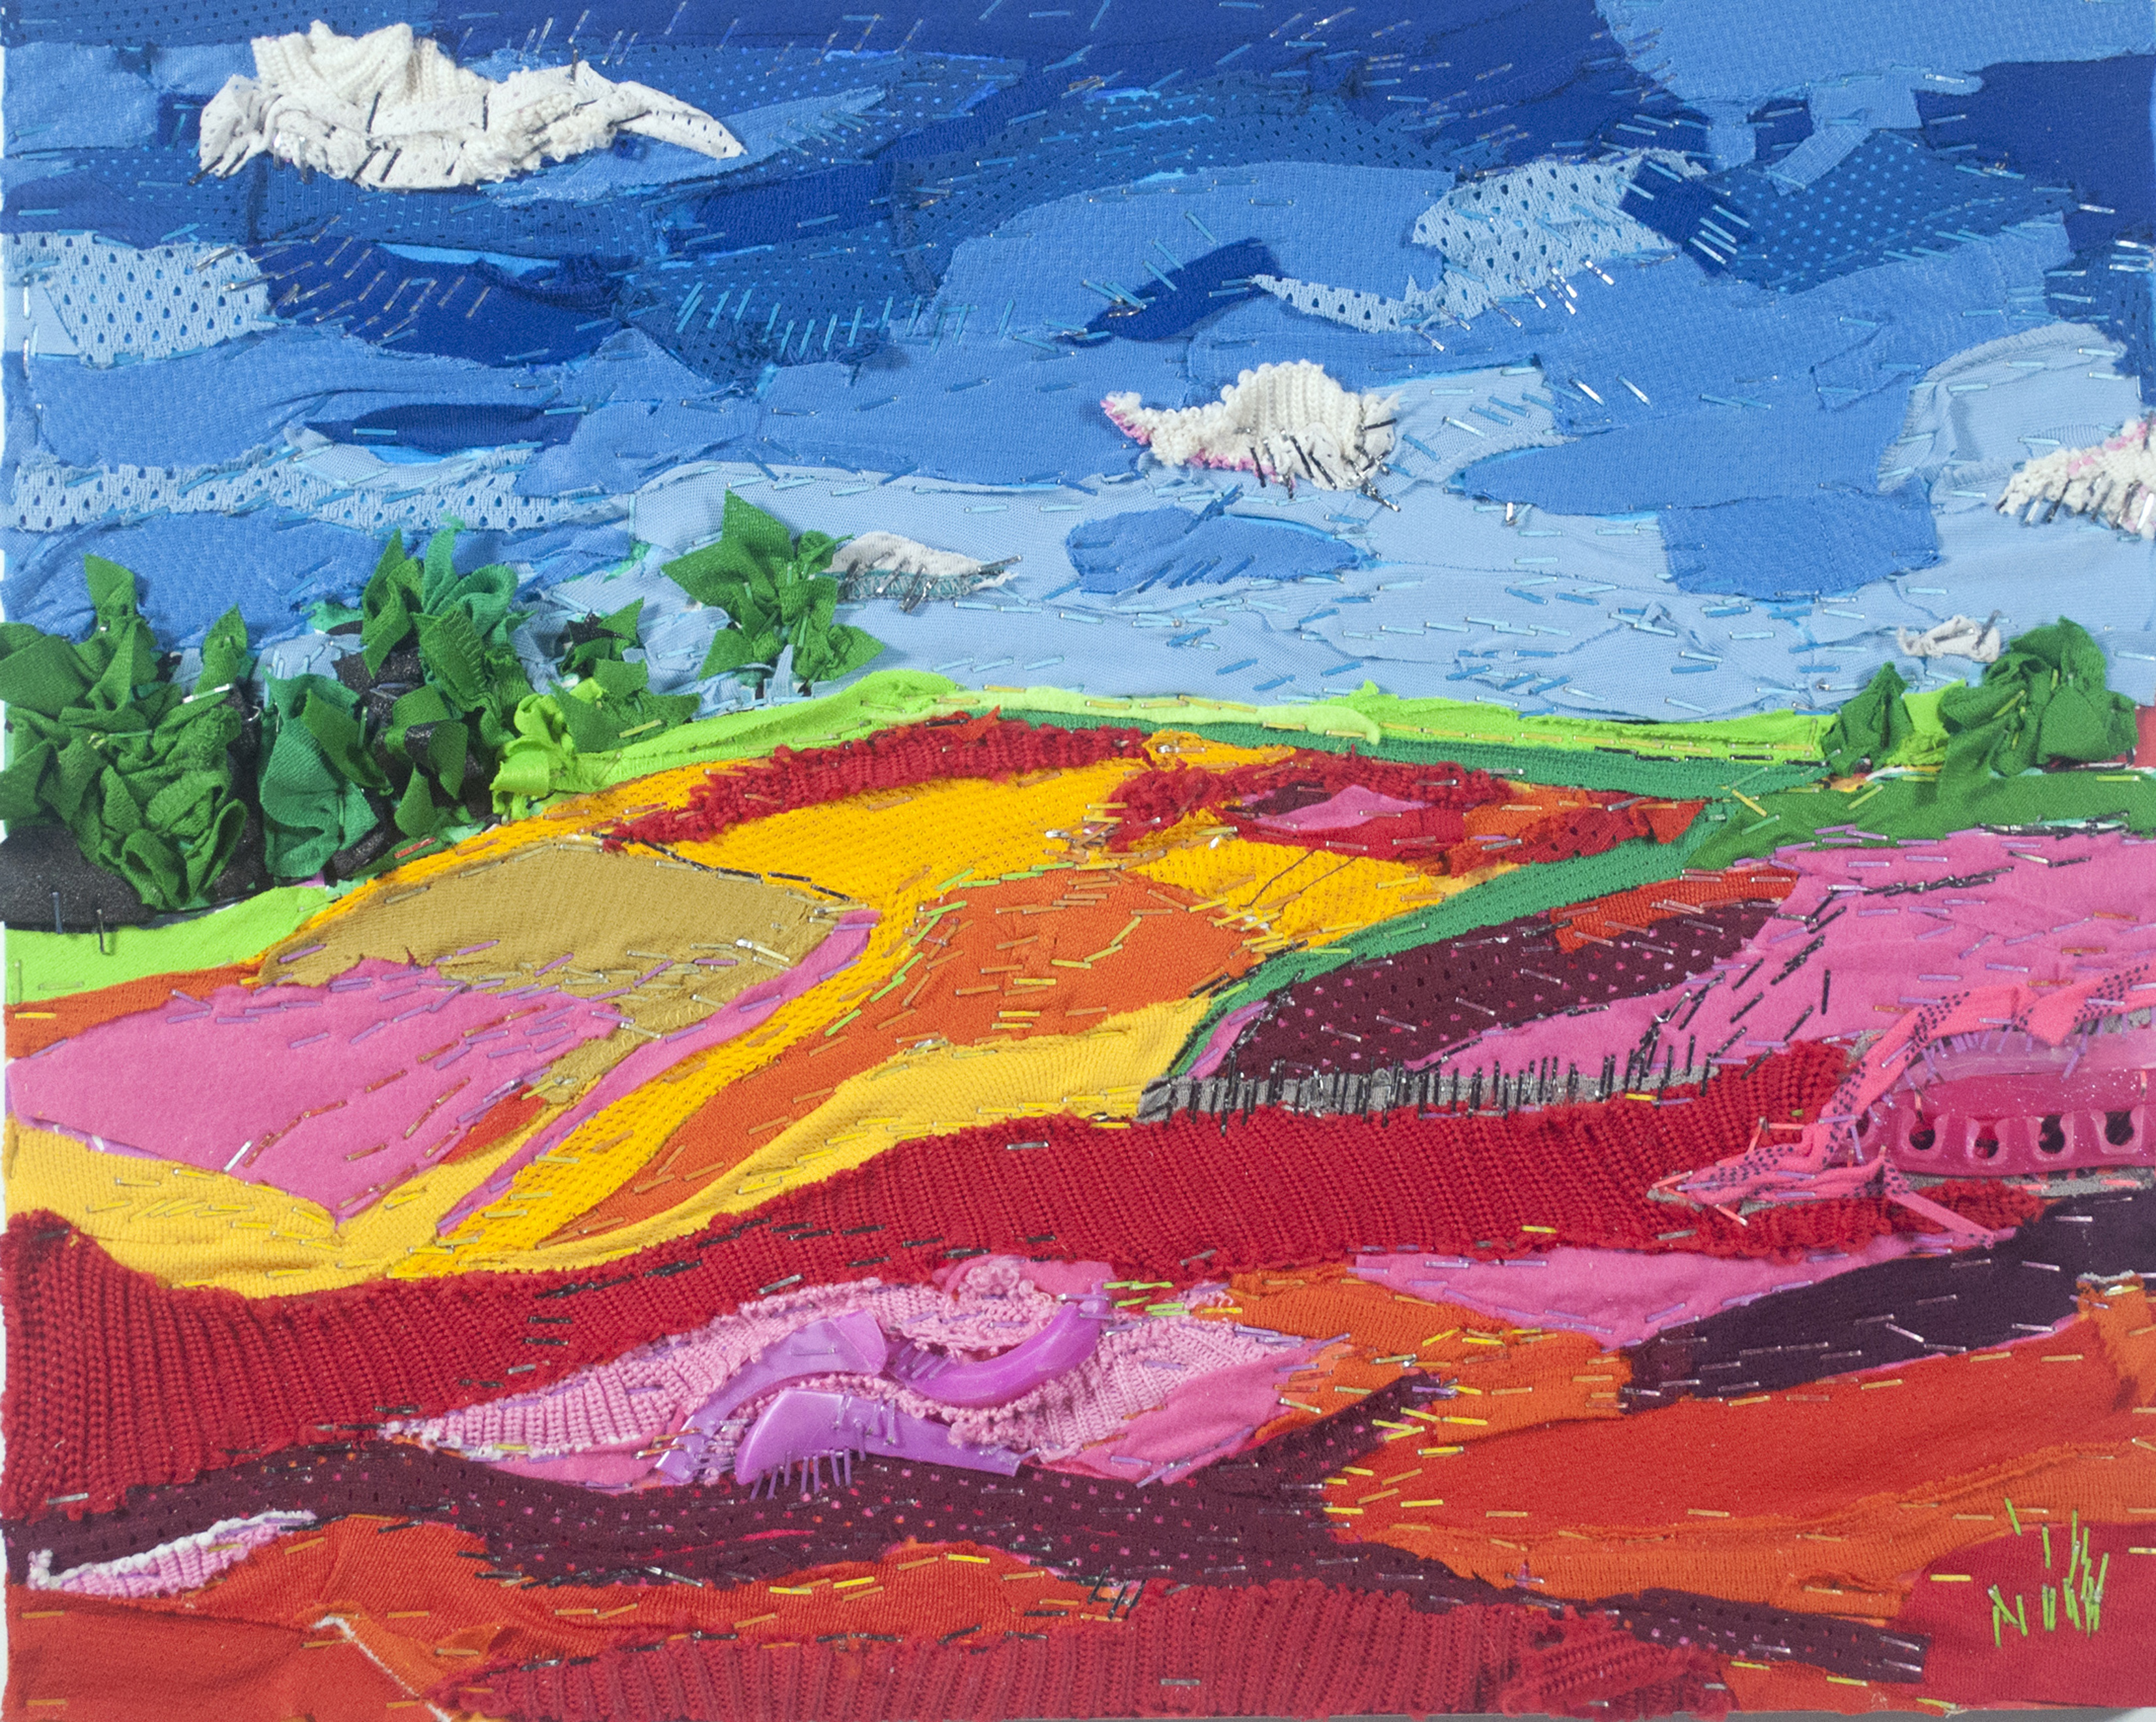 Using recycled hockey equipment, such as shoulder pads, knee pads, jerseys, and hockey sticks, the artist created a large textural collage depicting a spring landscape. There is a blue sky with various layers of dark and light blues, white clouds, a border of forest green trees in the distance as well as trees positioned throughout the landscape, fields of greens, yellows, and blues, and a surrounding fence made of broken hockey sticks.